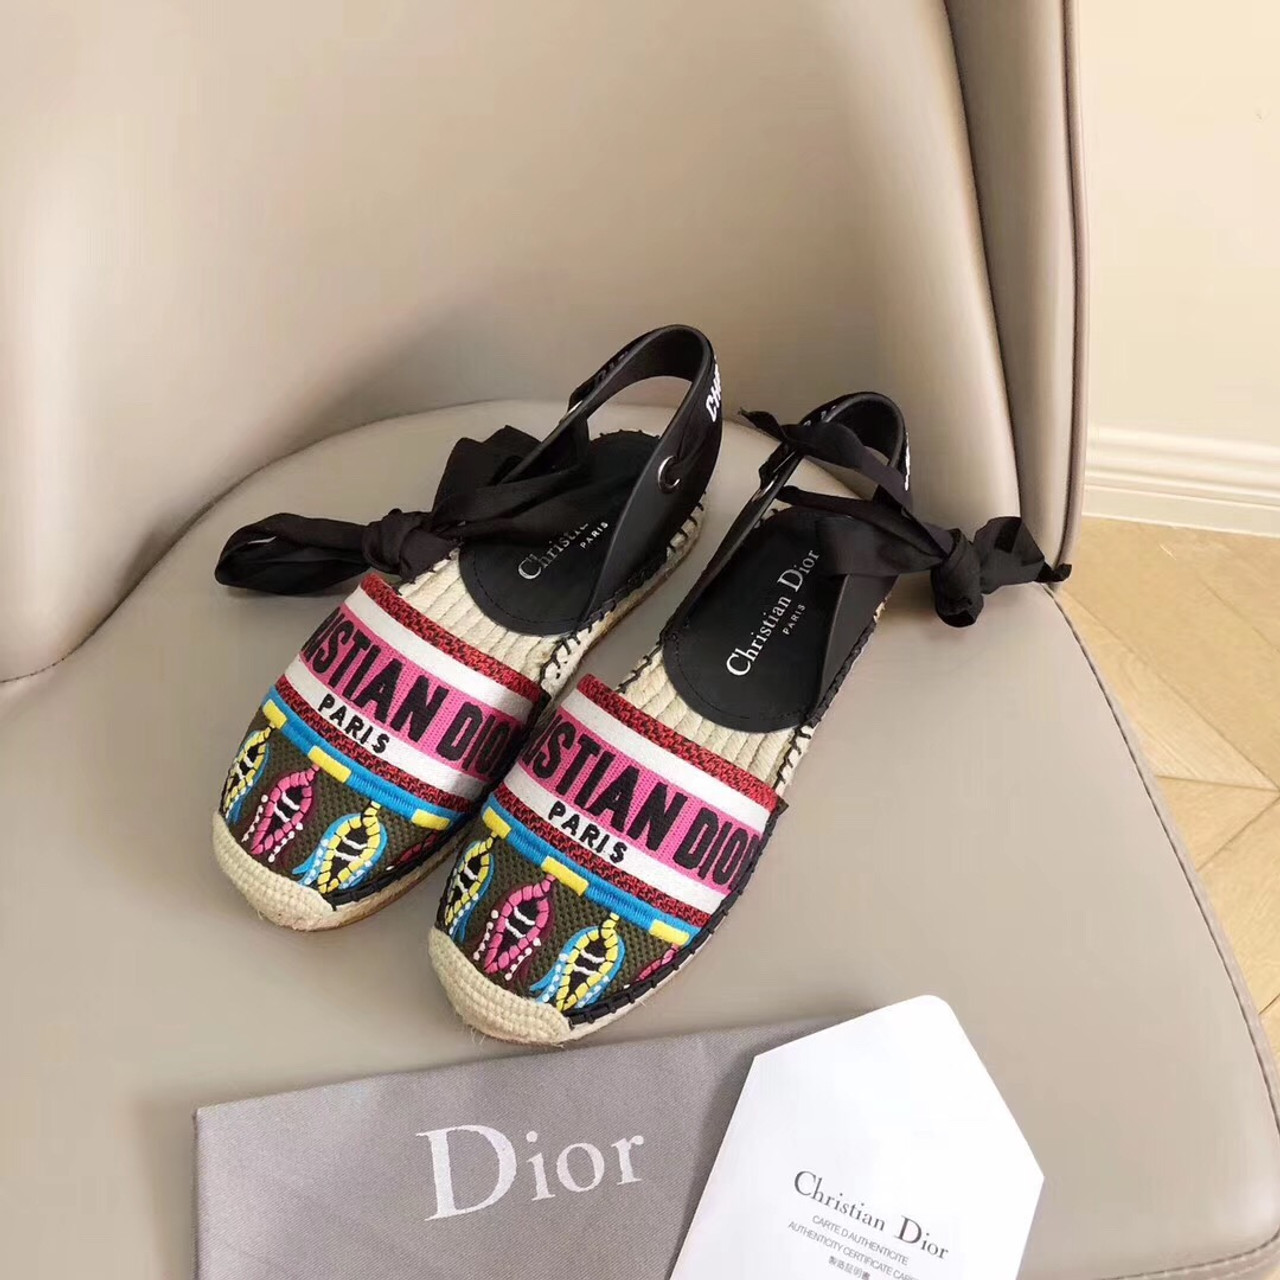 662a0c3f845 Christian Dior Nicely-D Lace Up Espadrille Sandals Calfskin Leather  Spring/Summer 2019 Collection, Black/Fuschia